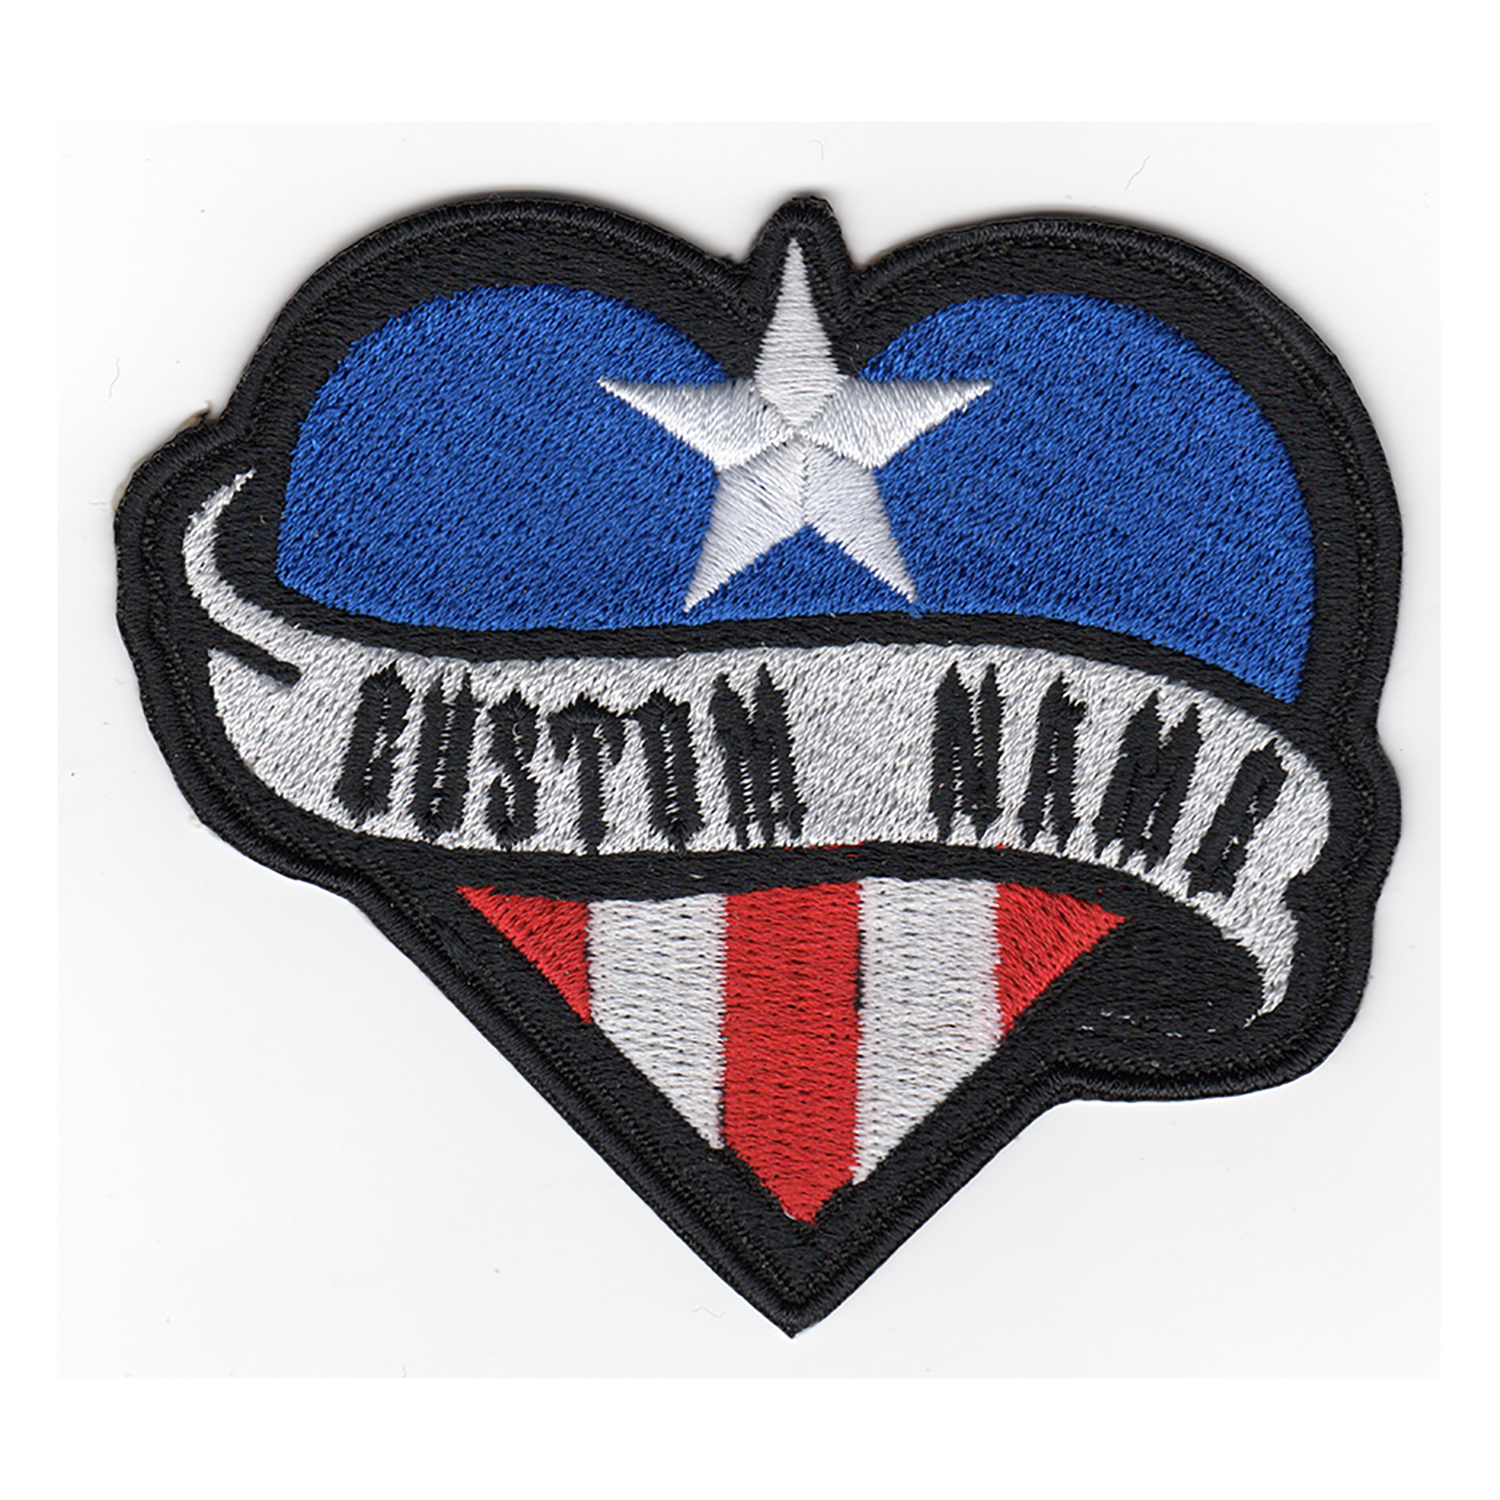 Puerto Rican Heart Flag Name Tag Biker Vest Patch